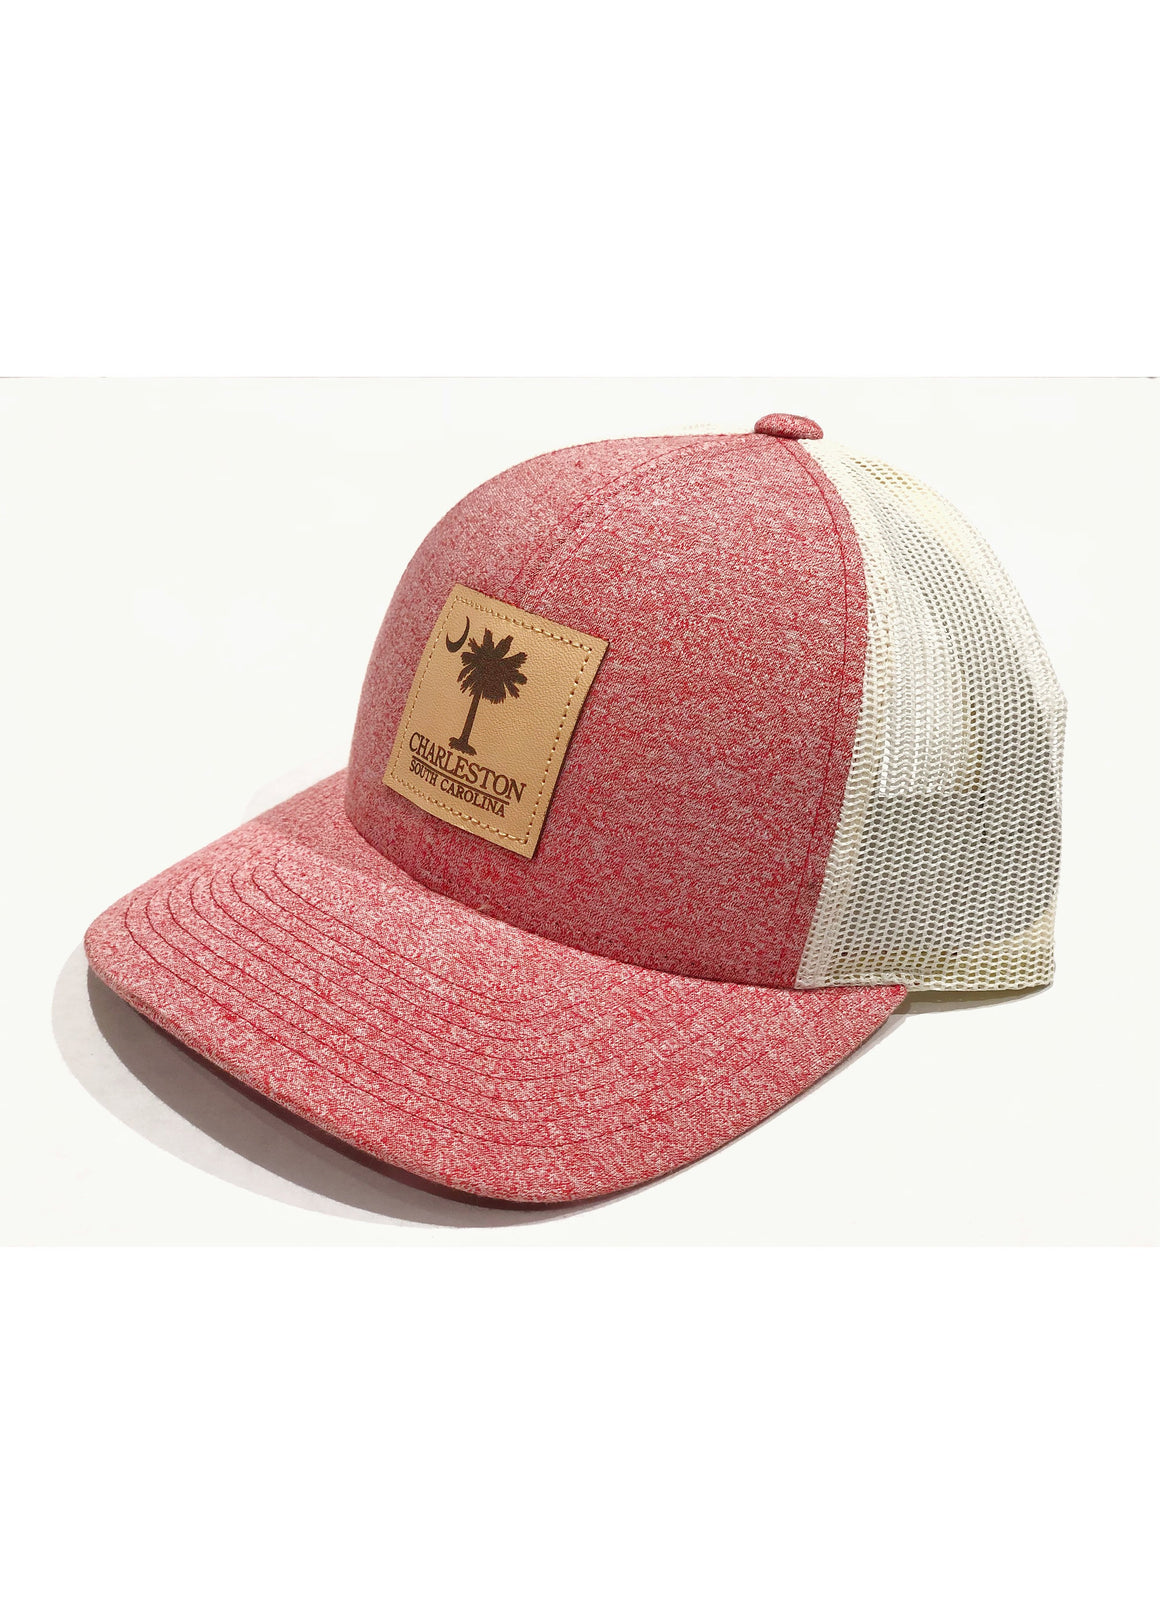 Trucker Hat with Palmetto and Crescent Moon Leather Patch | Red Heather / Birch